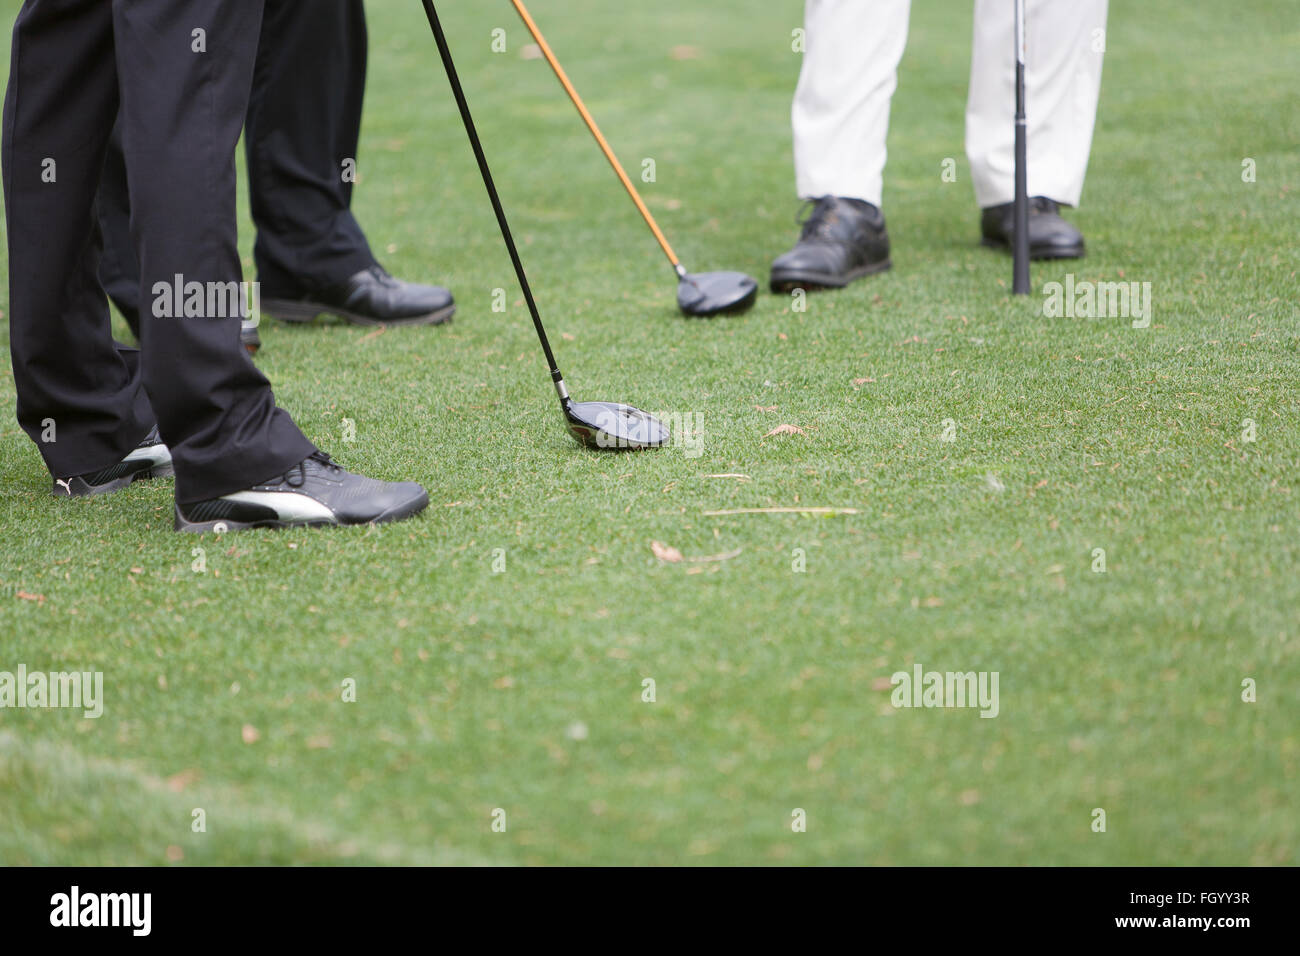 Men standing on a golf green - Stock Image